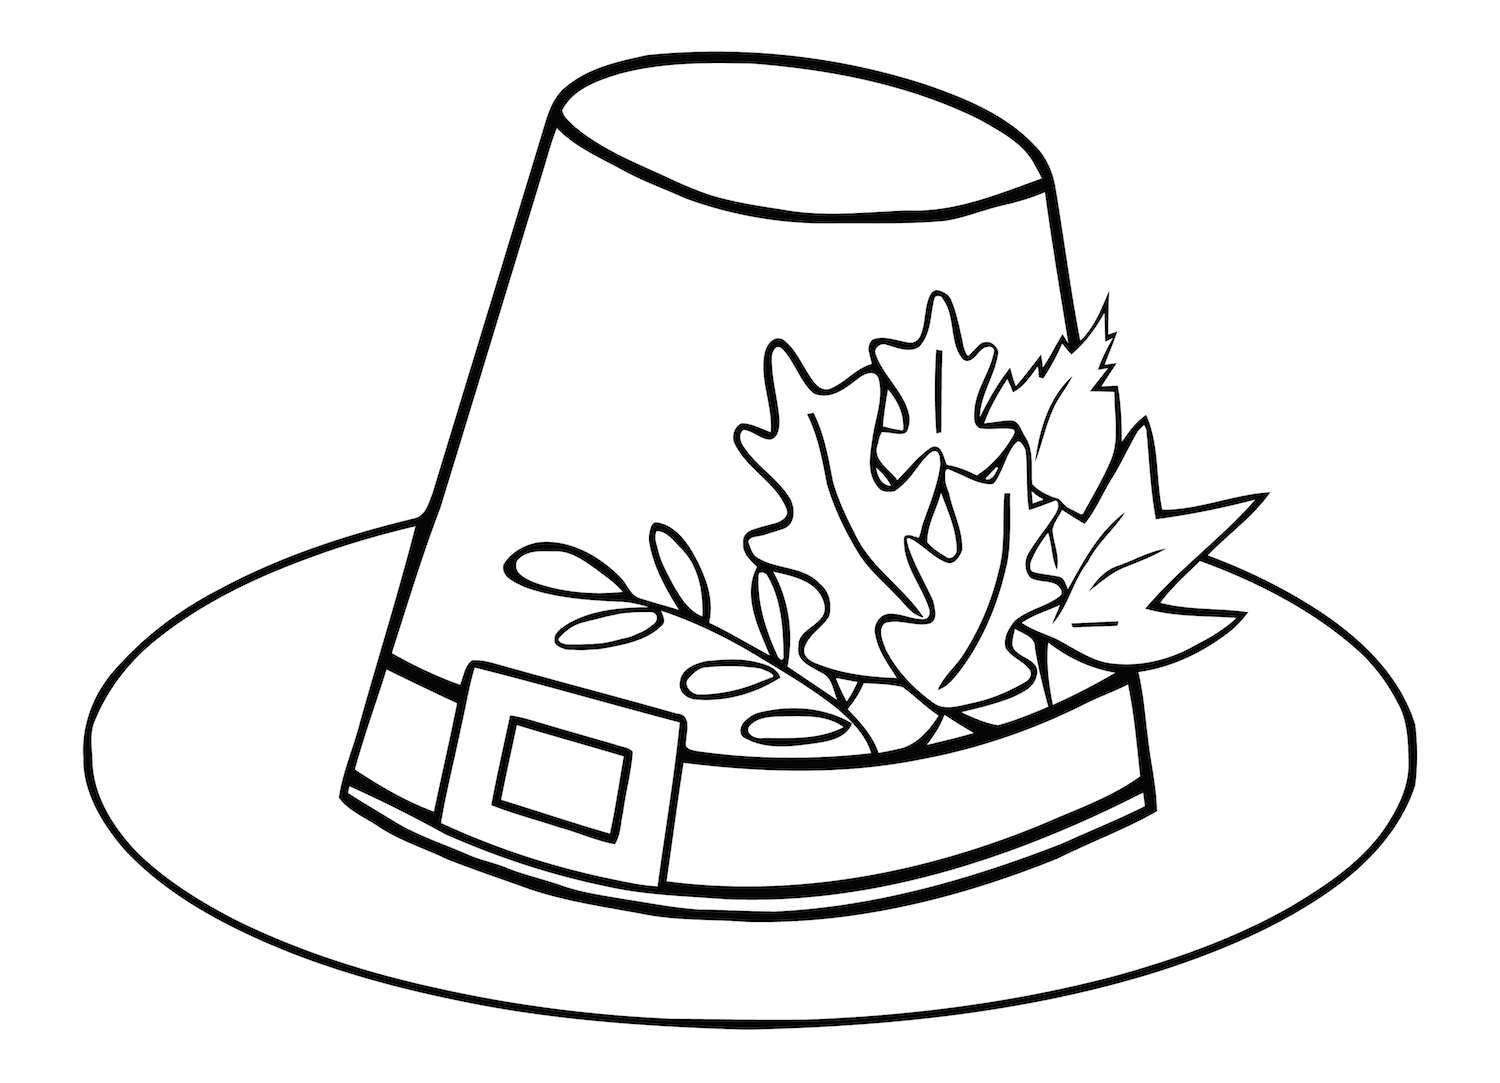 Free Thanksgiving Hat Coloring Pages at KidsPartyWorks.Com